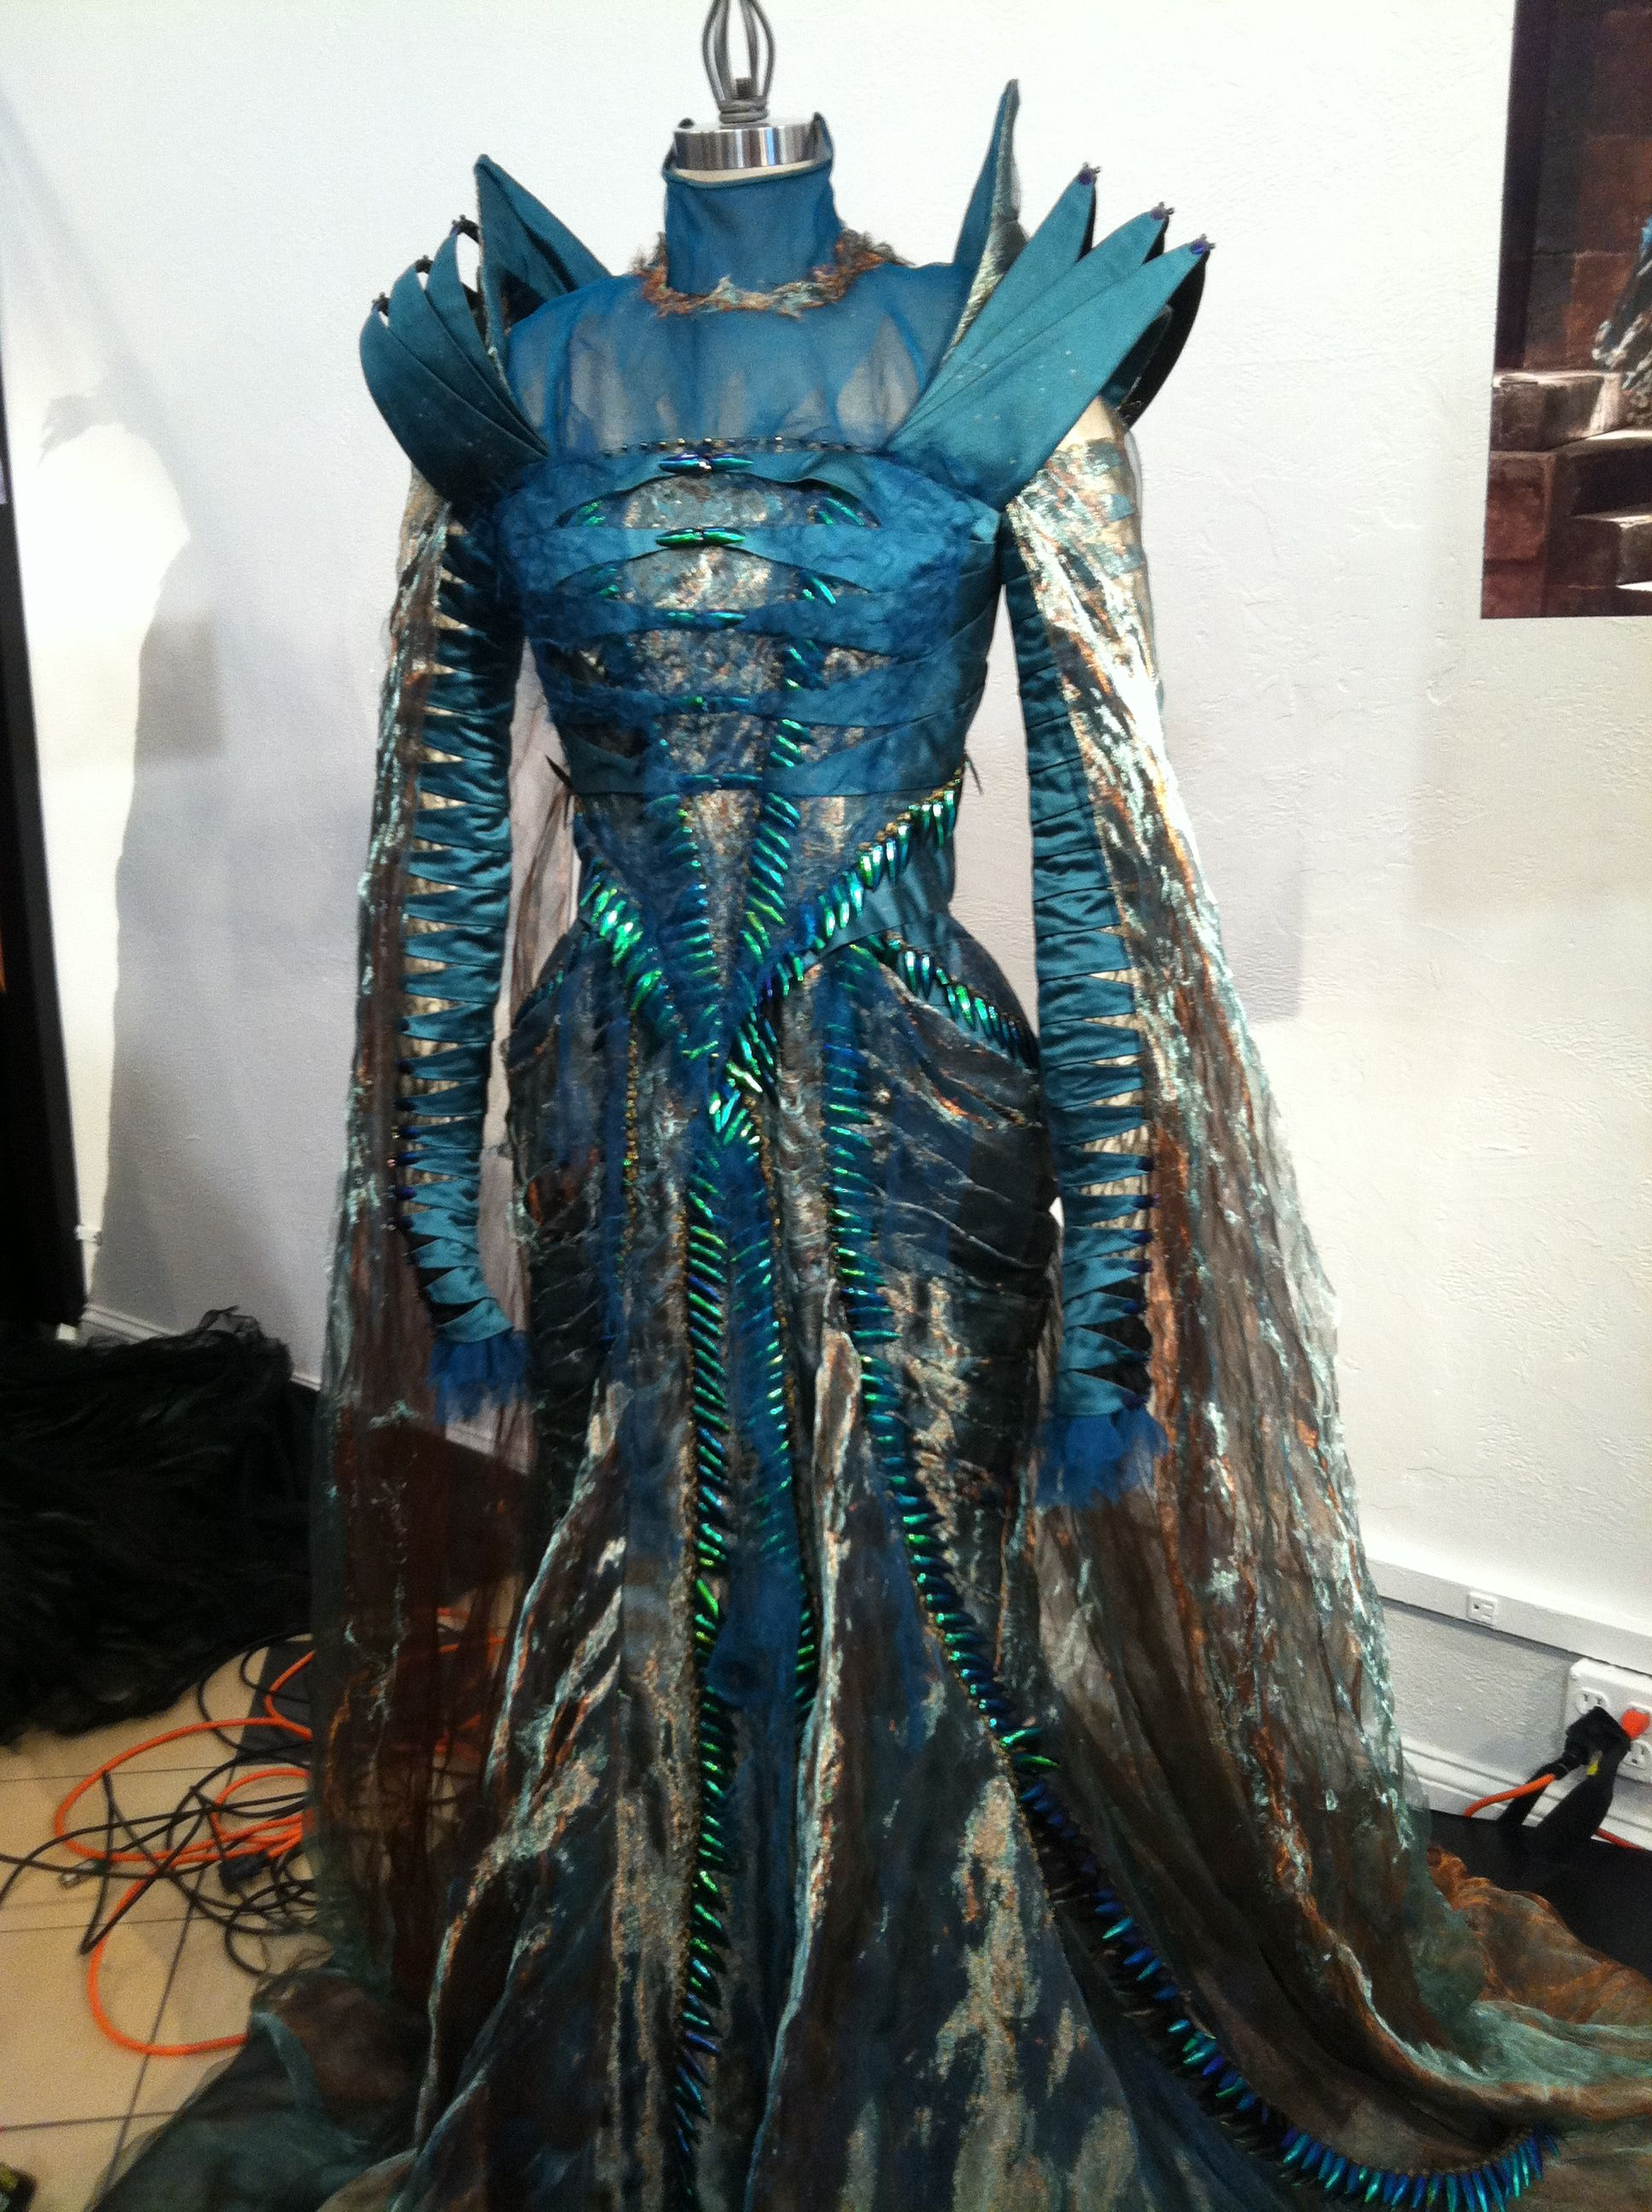 Costume Designer Colleen Atwood Talks Snow White And The Huntsman And Working With Johnny Depp In The Thin Man With Images Colleen Atwood Fantasy Dress Fantasy Fashion